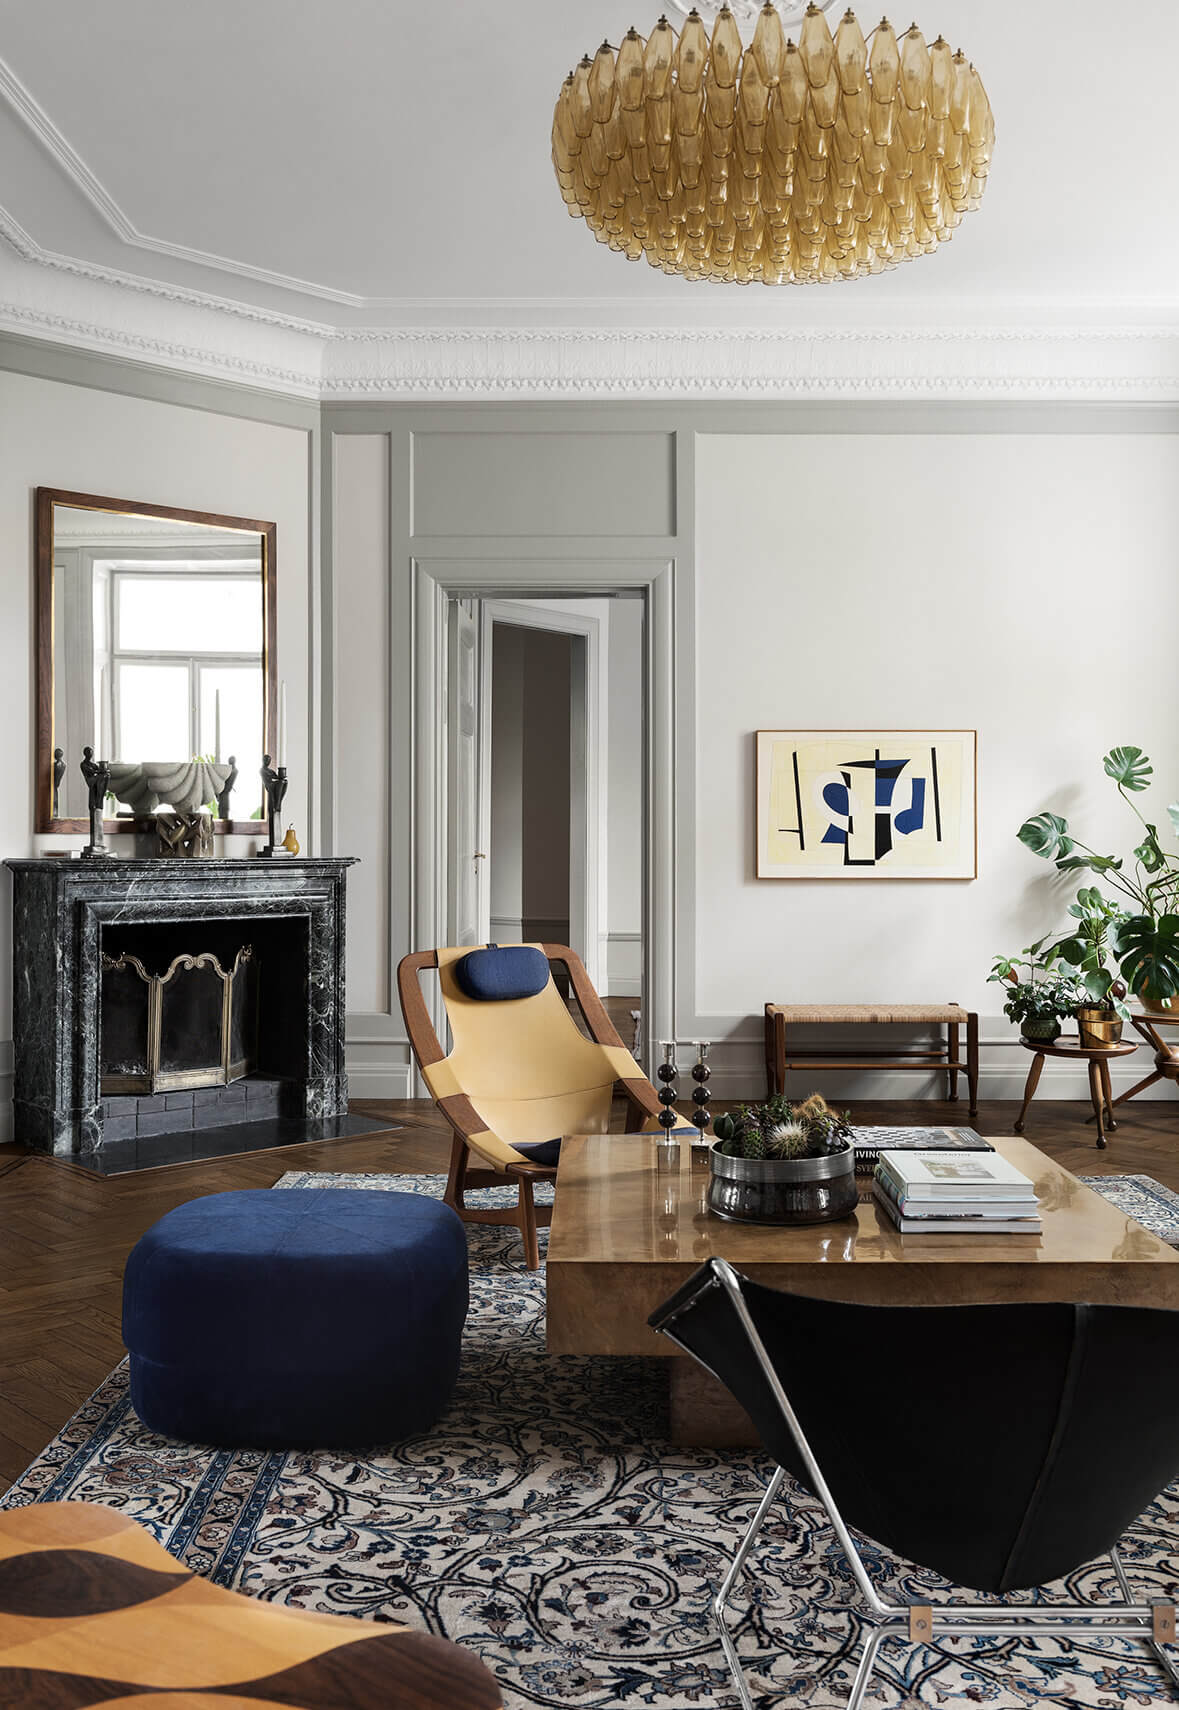 A Stylish Apartment Designed by Joanna Lavén